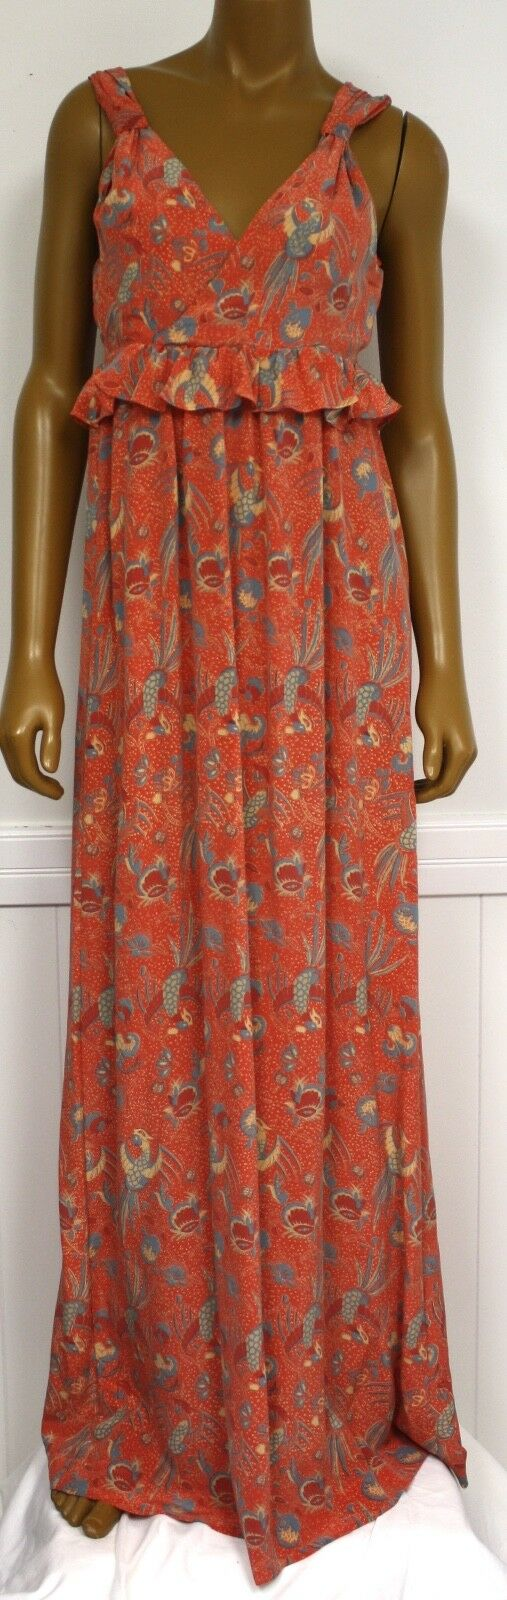 French Connection Kleid damen Orange Rosa Sommerkleid Maxi Seide Neu Ret. 228